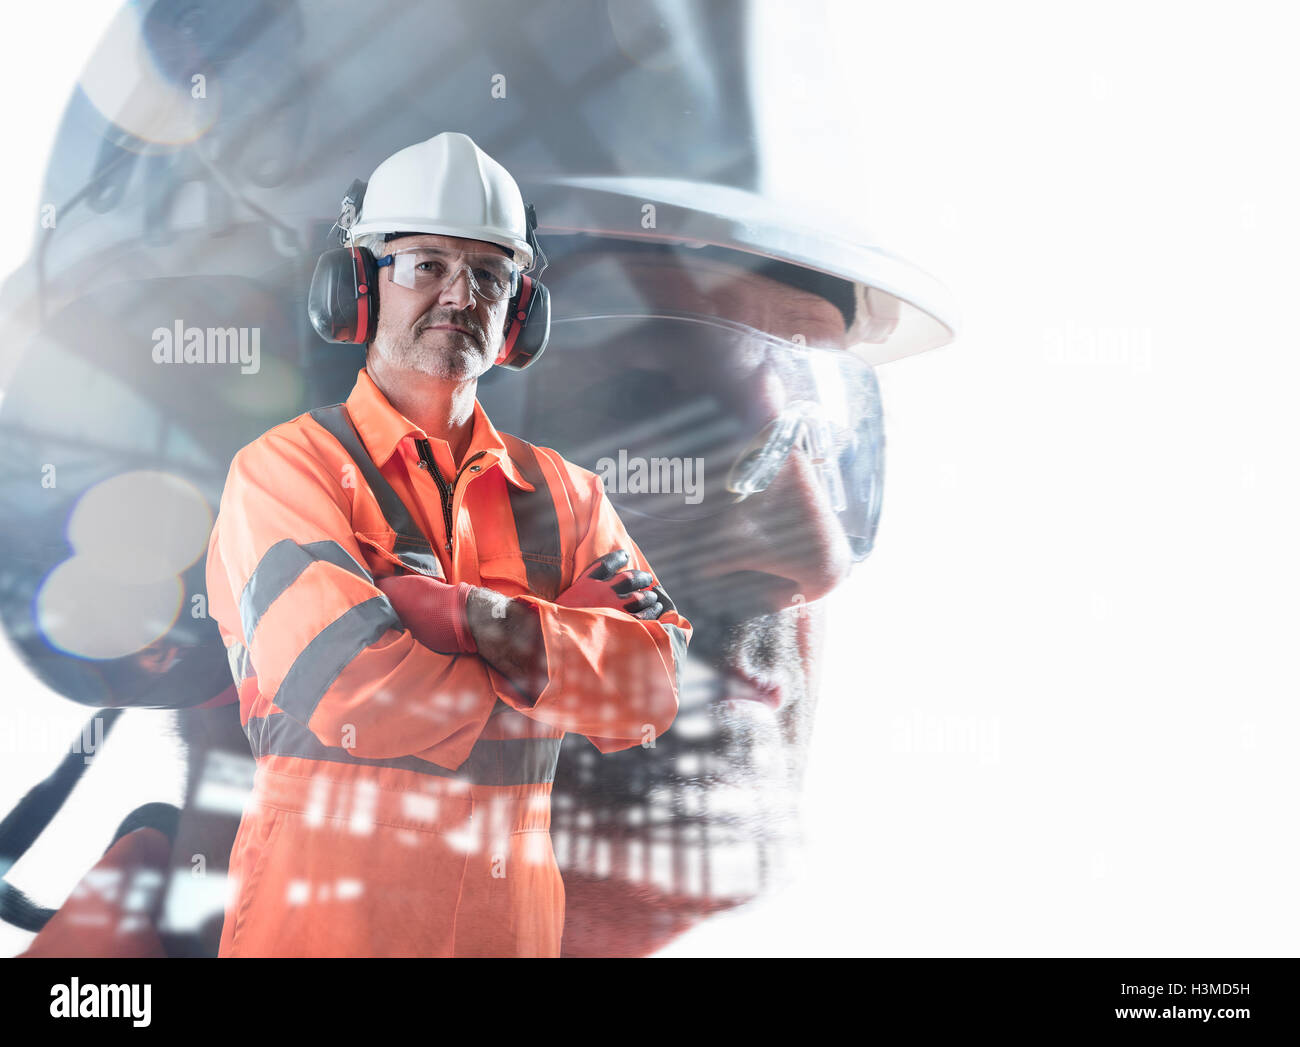 Composite image of construction worker showing full health and safety wear - Stock Image